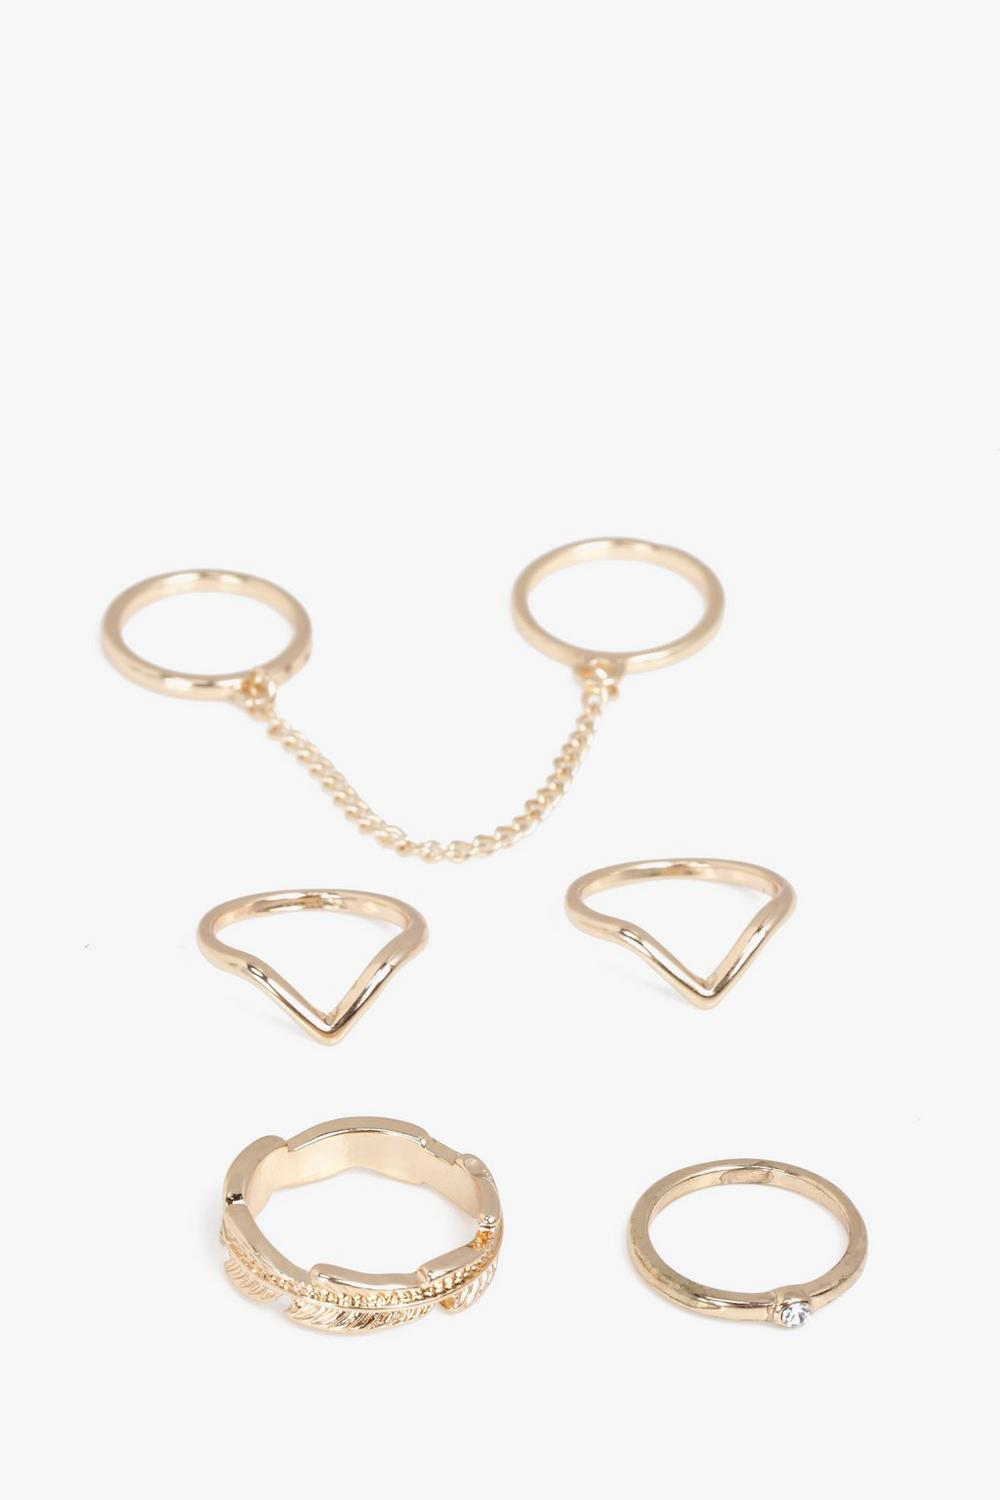 Lara Gold Mixed Chain Detail Ring Set